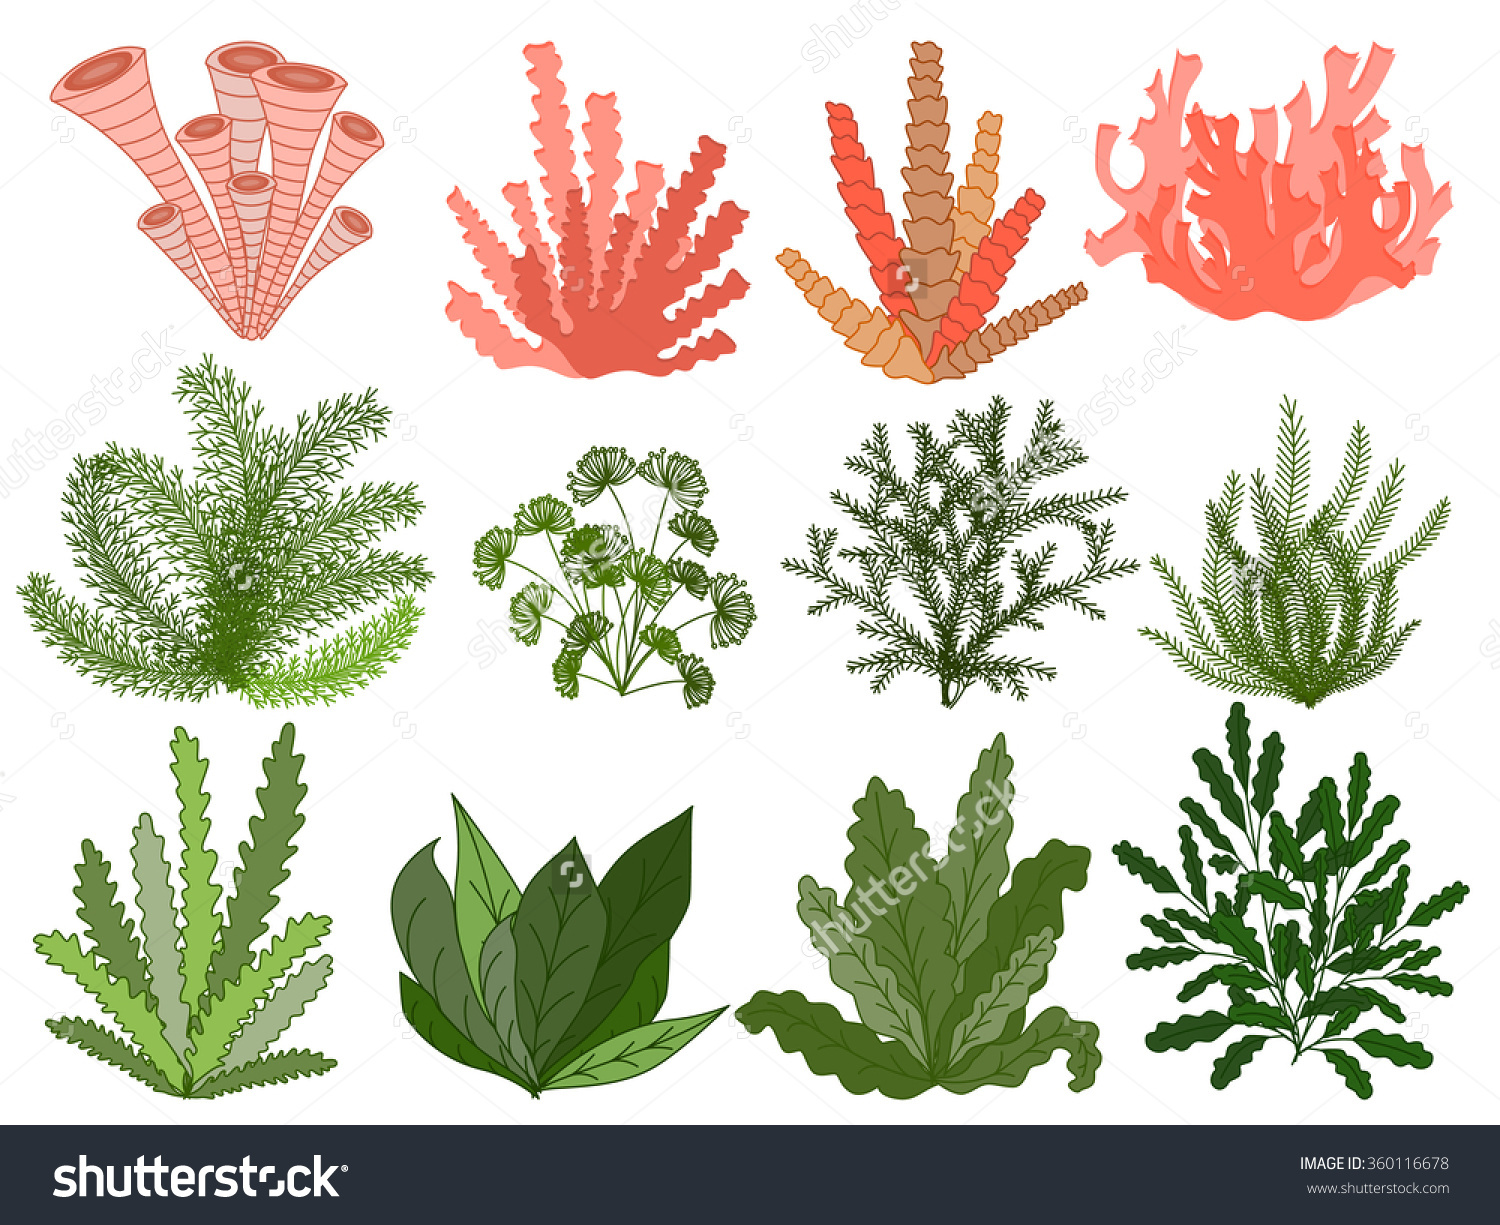 Marine Plant clipart #9, Download drawings